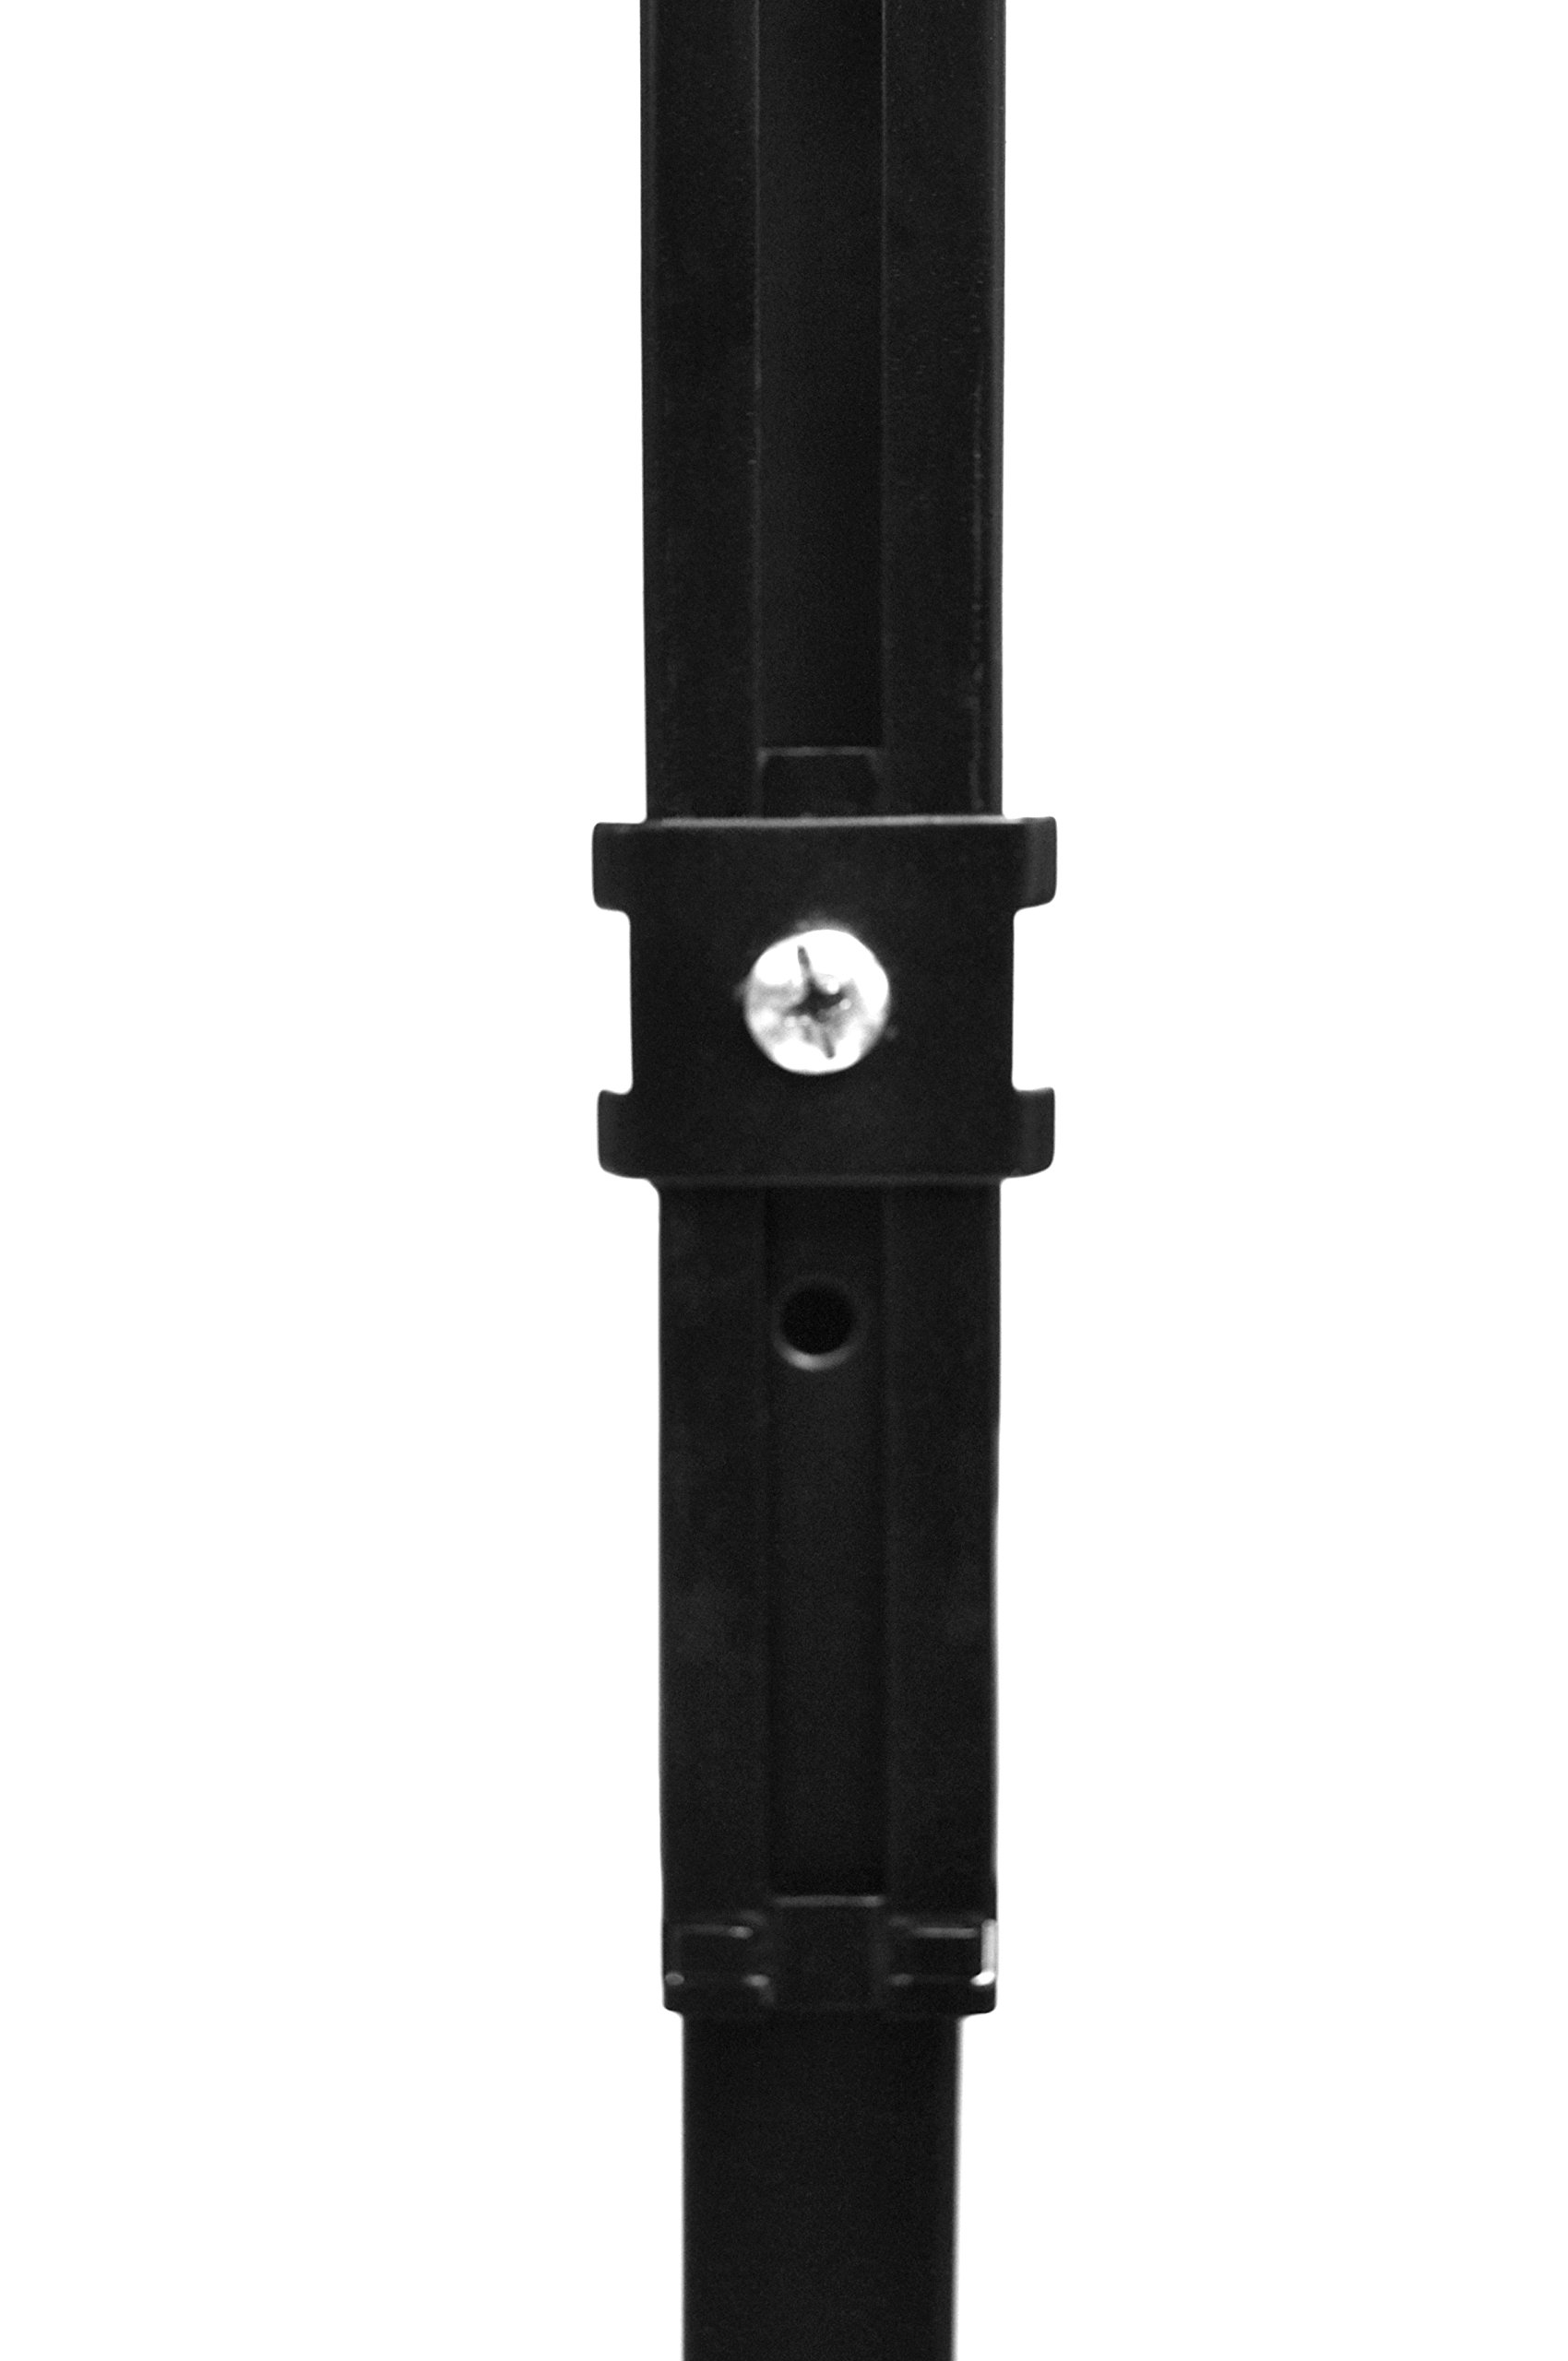 Universal Home Theater Projector Ceiling Mount with Adjustable Tilt and Swivel Arm (P-MOUNT-BL) by FAVI (Image #10)